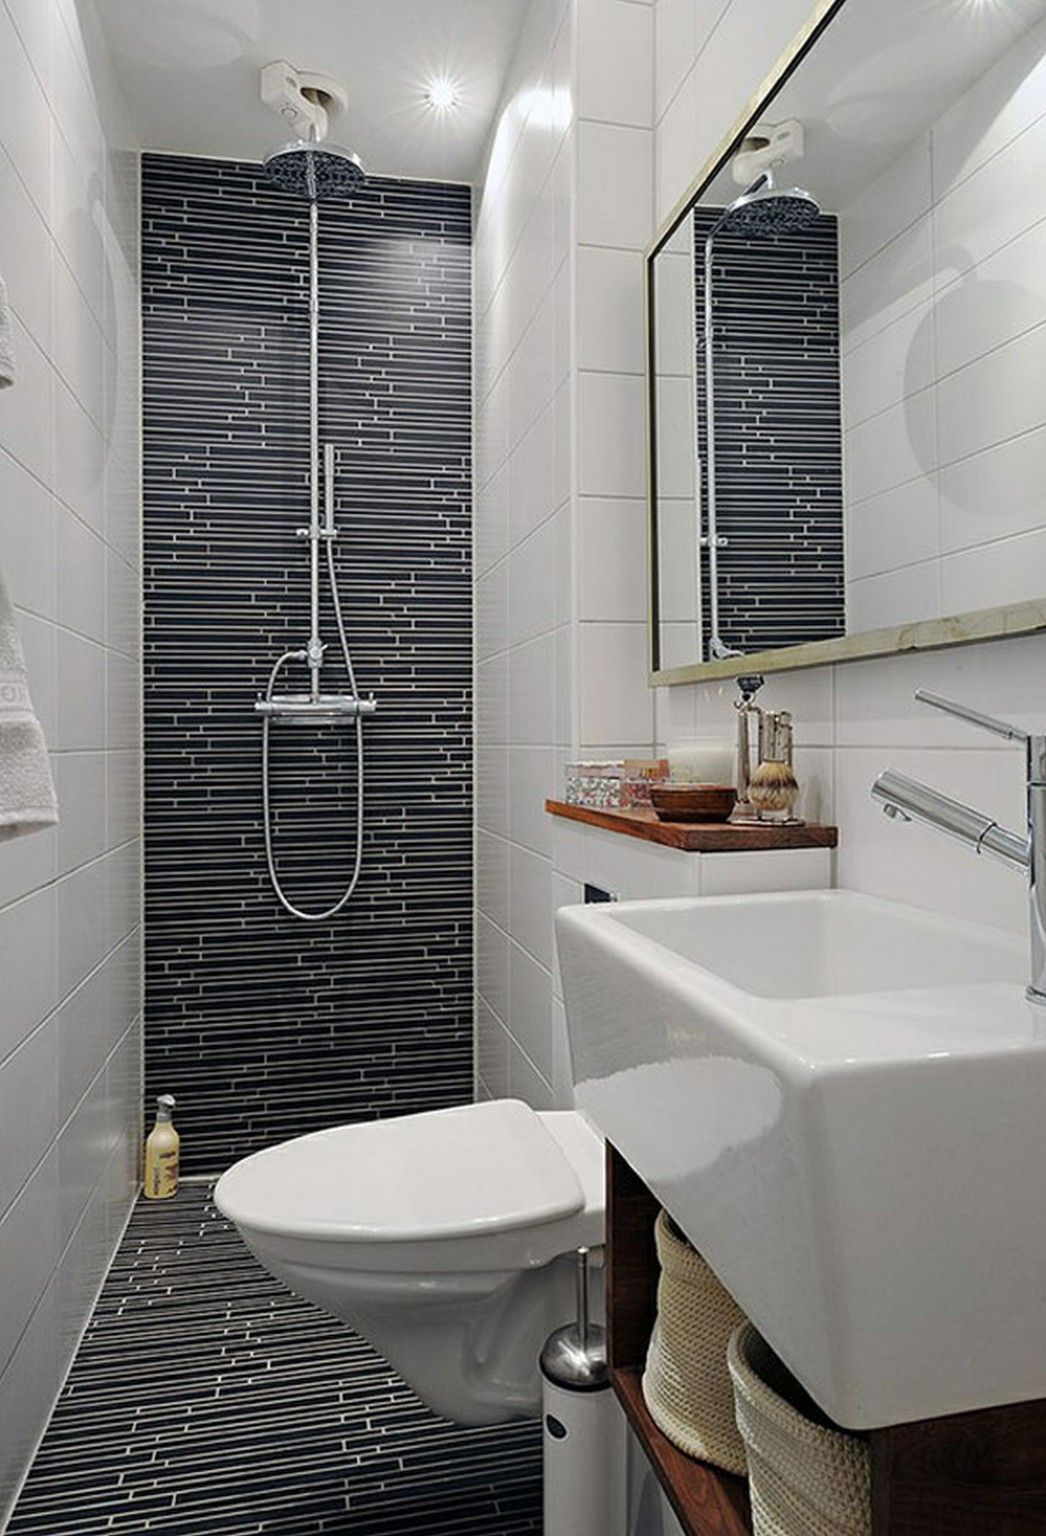 Interior Bathroom Agreeable Small Cottage S With Grey Stones Wall Panel  Andwall Mount Shower Faucet Plus White Glass Bathroom Sink And Rectangular  Wall ...